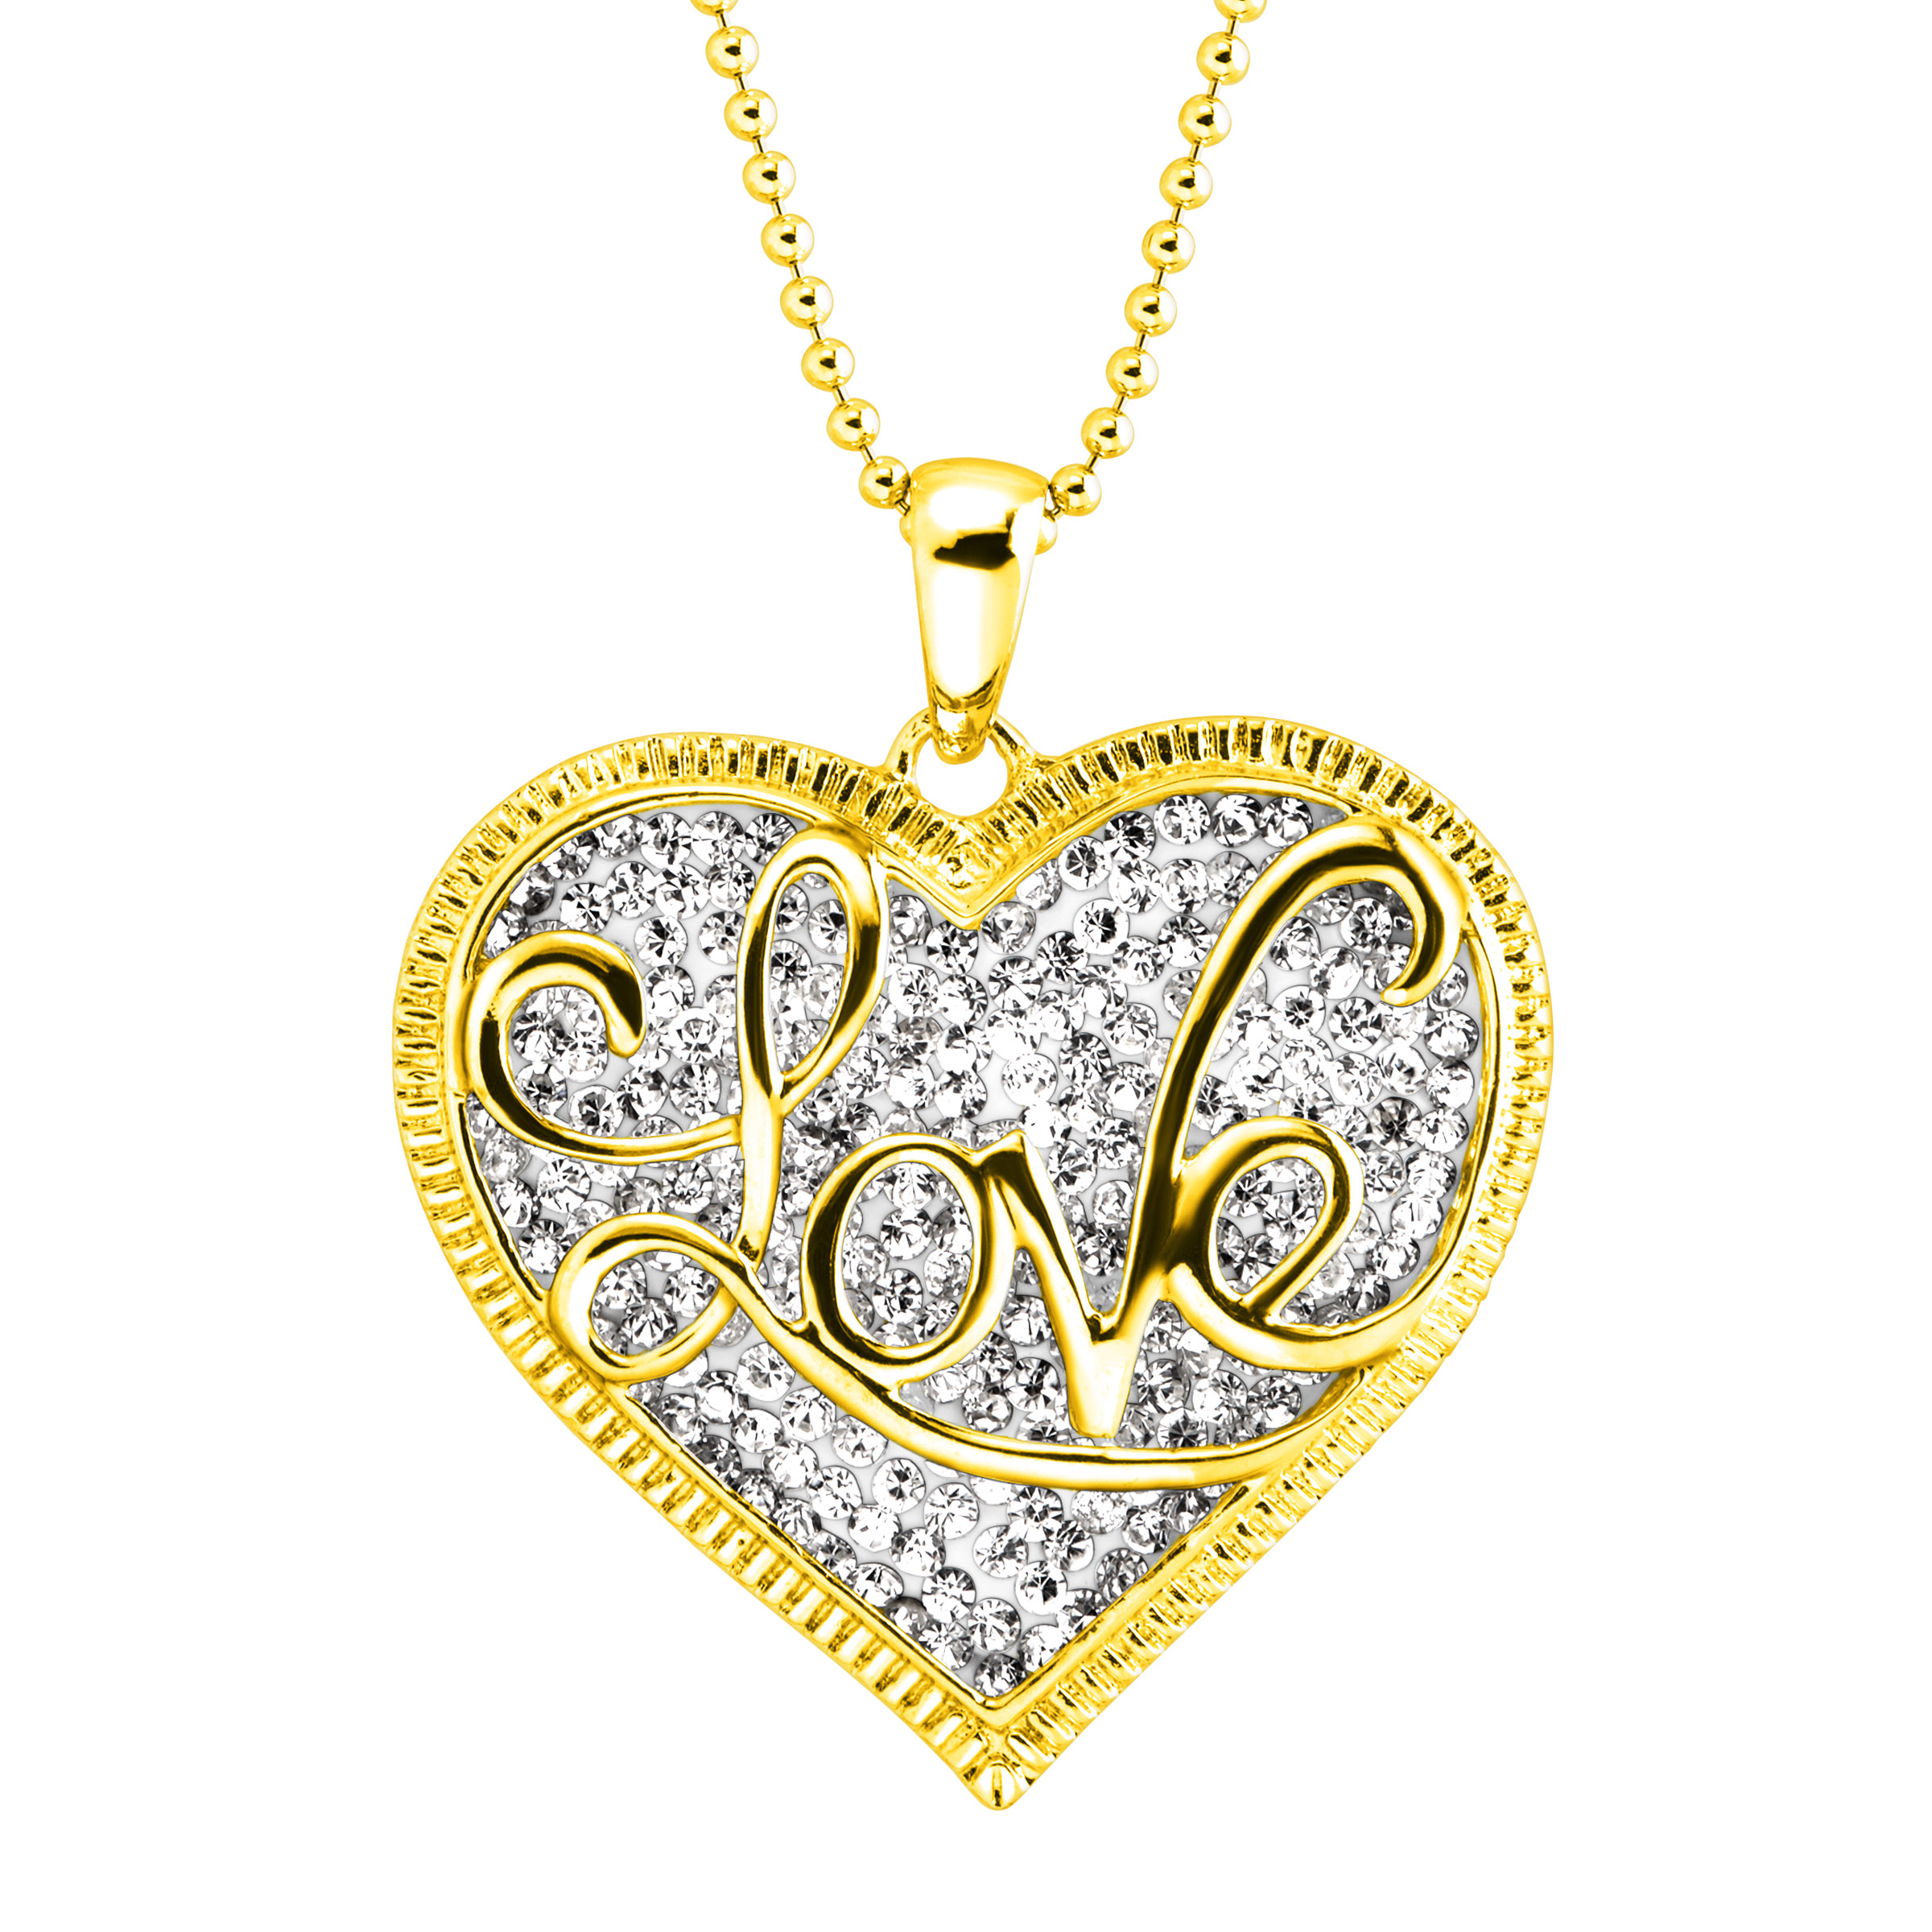 Luminesse 'Love' Script Overlay Pendant Necklace with Swarovski Crystals in 18kt Gold-Plated Sterling Silver